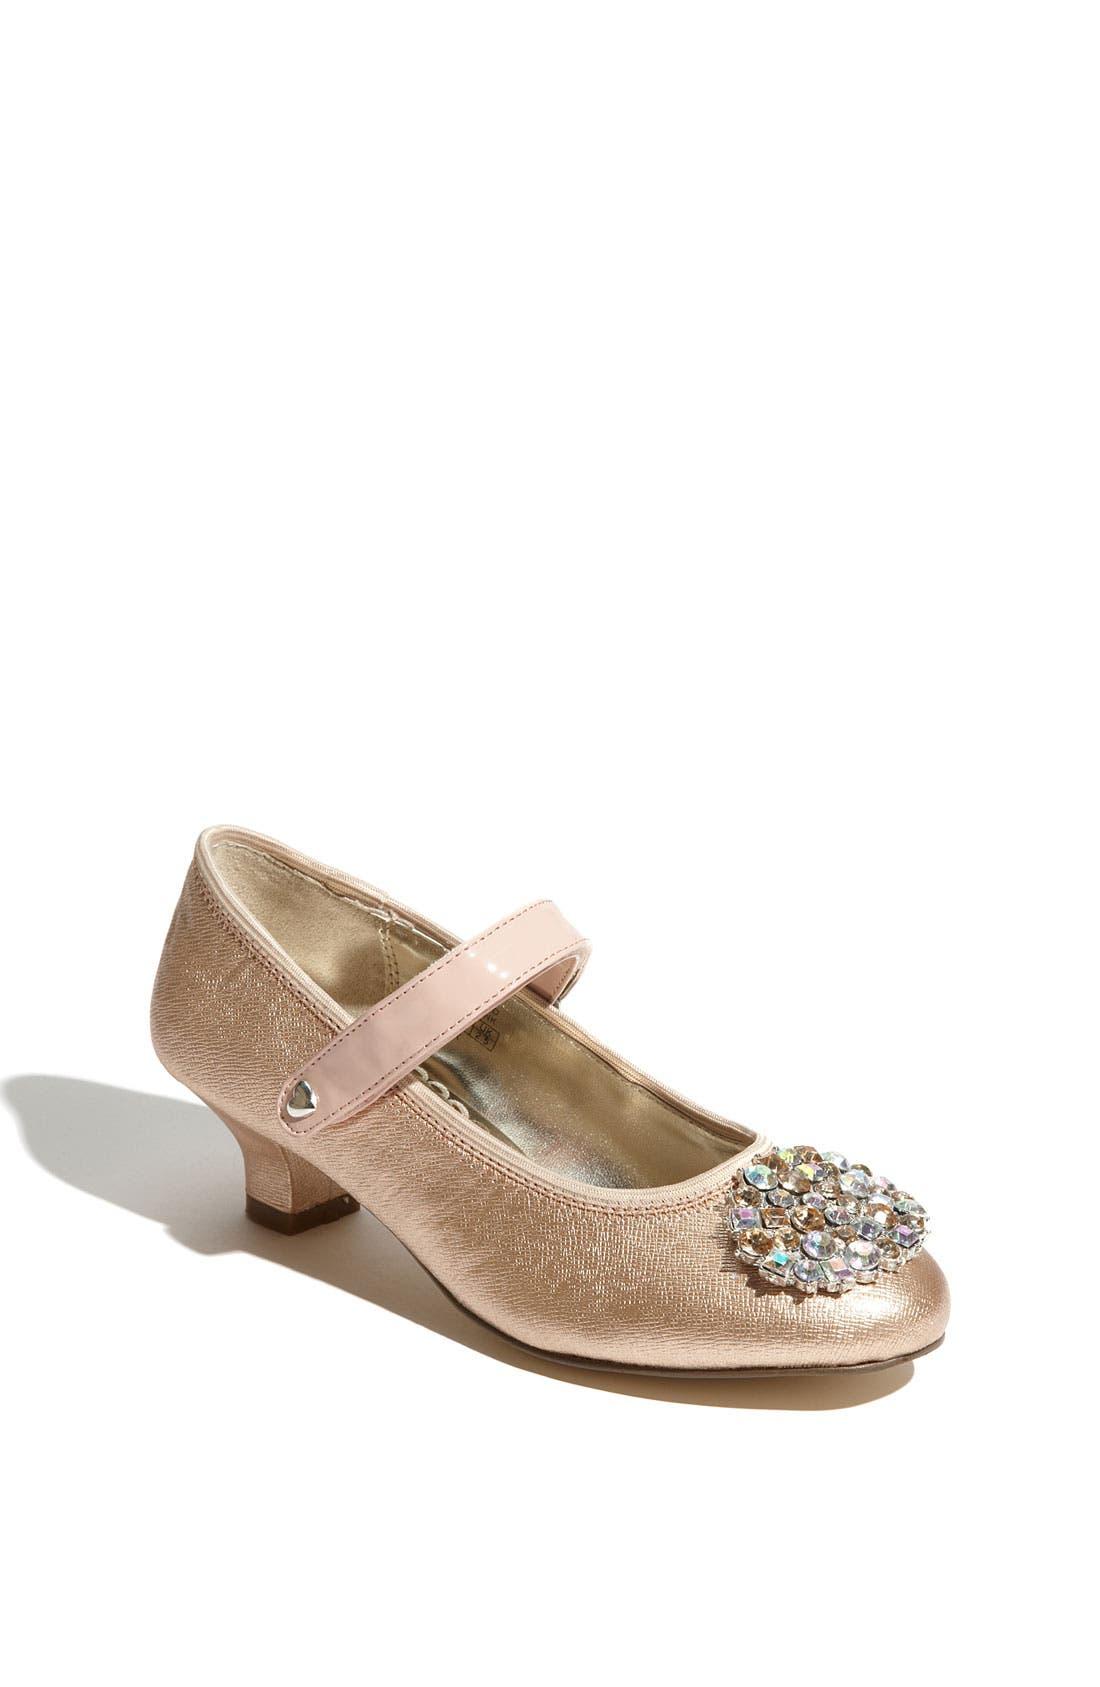 Alternate Image 1 Selected - Juicy Couture 'Phoebe' Shoe (Toddler, Little Kid & Big Kid)